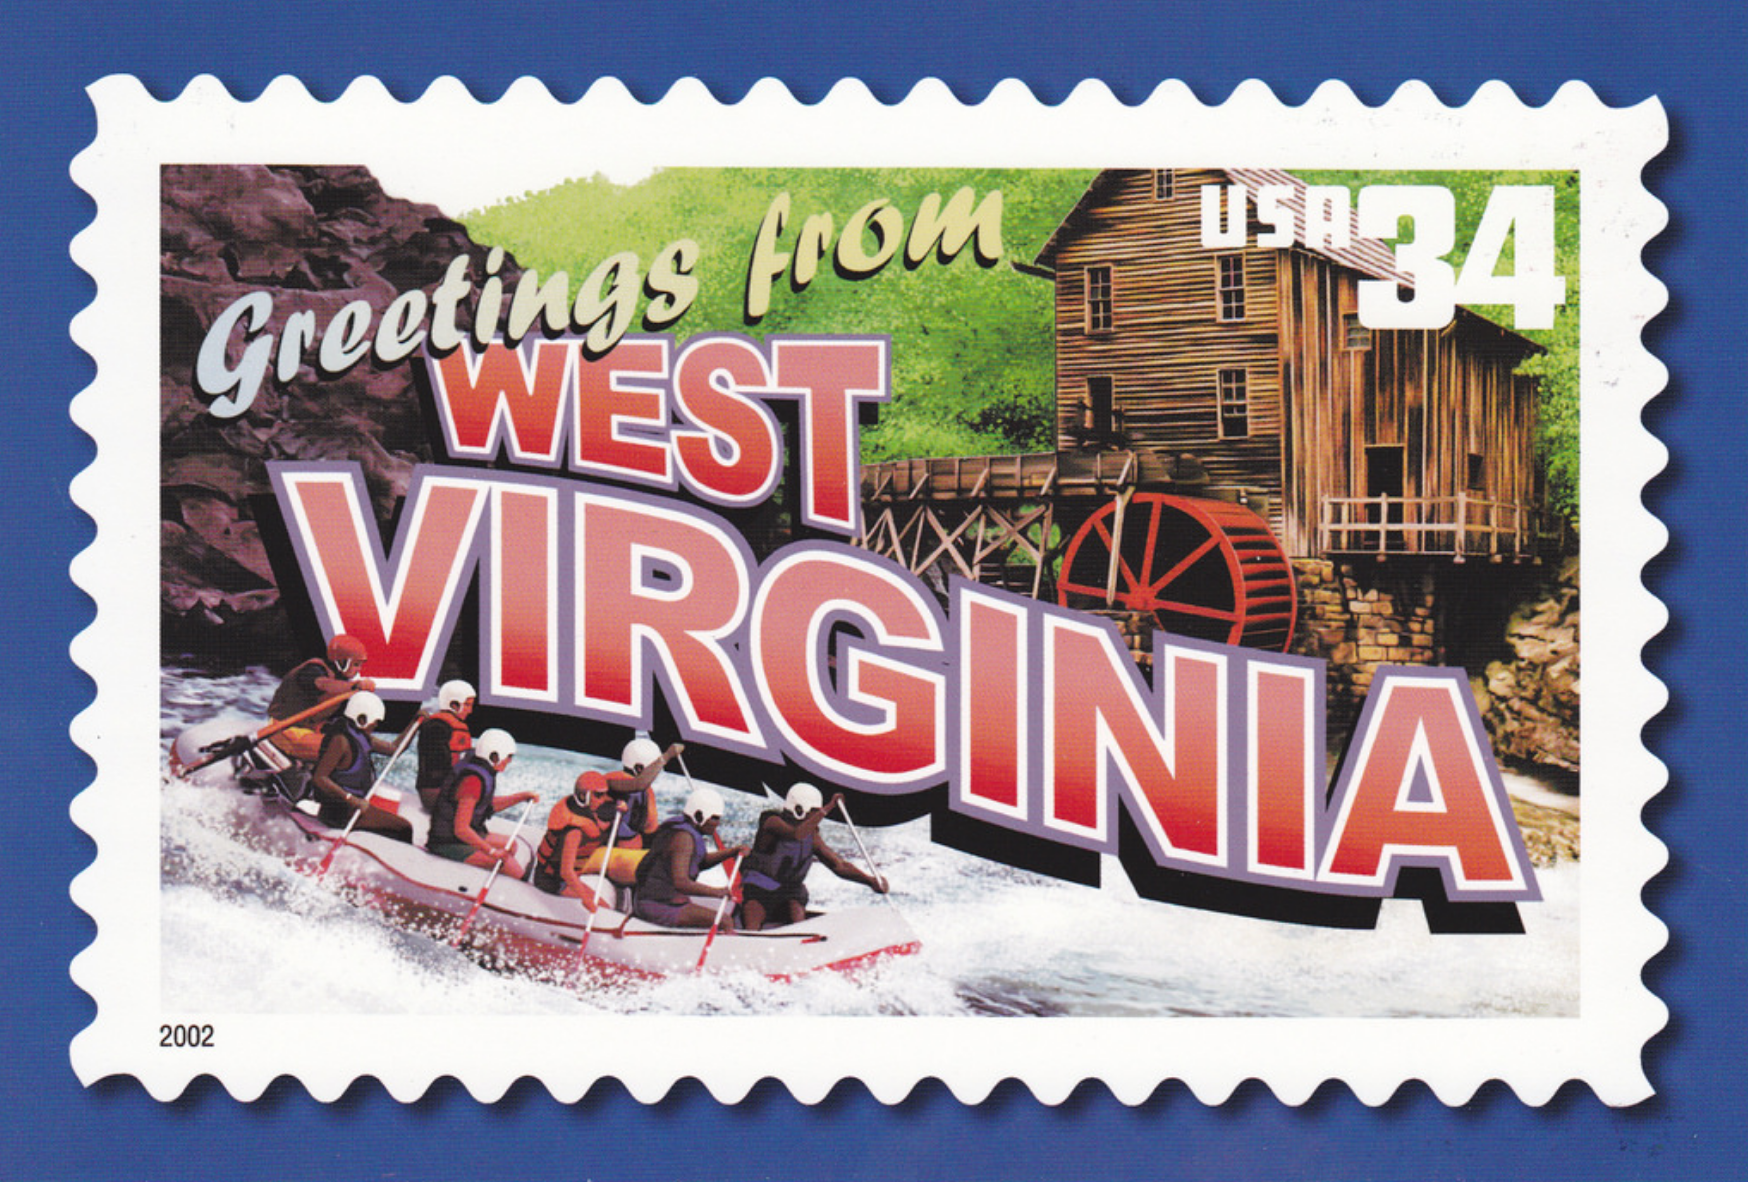 west virginia, stay fit, corporate housing, furnished, serviced, apartment, fitness, wellness